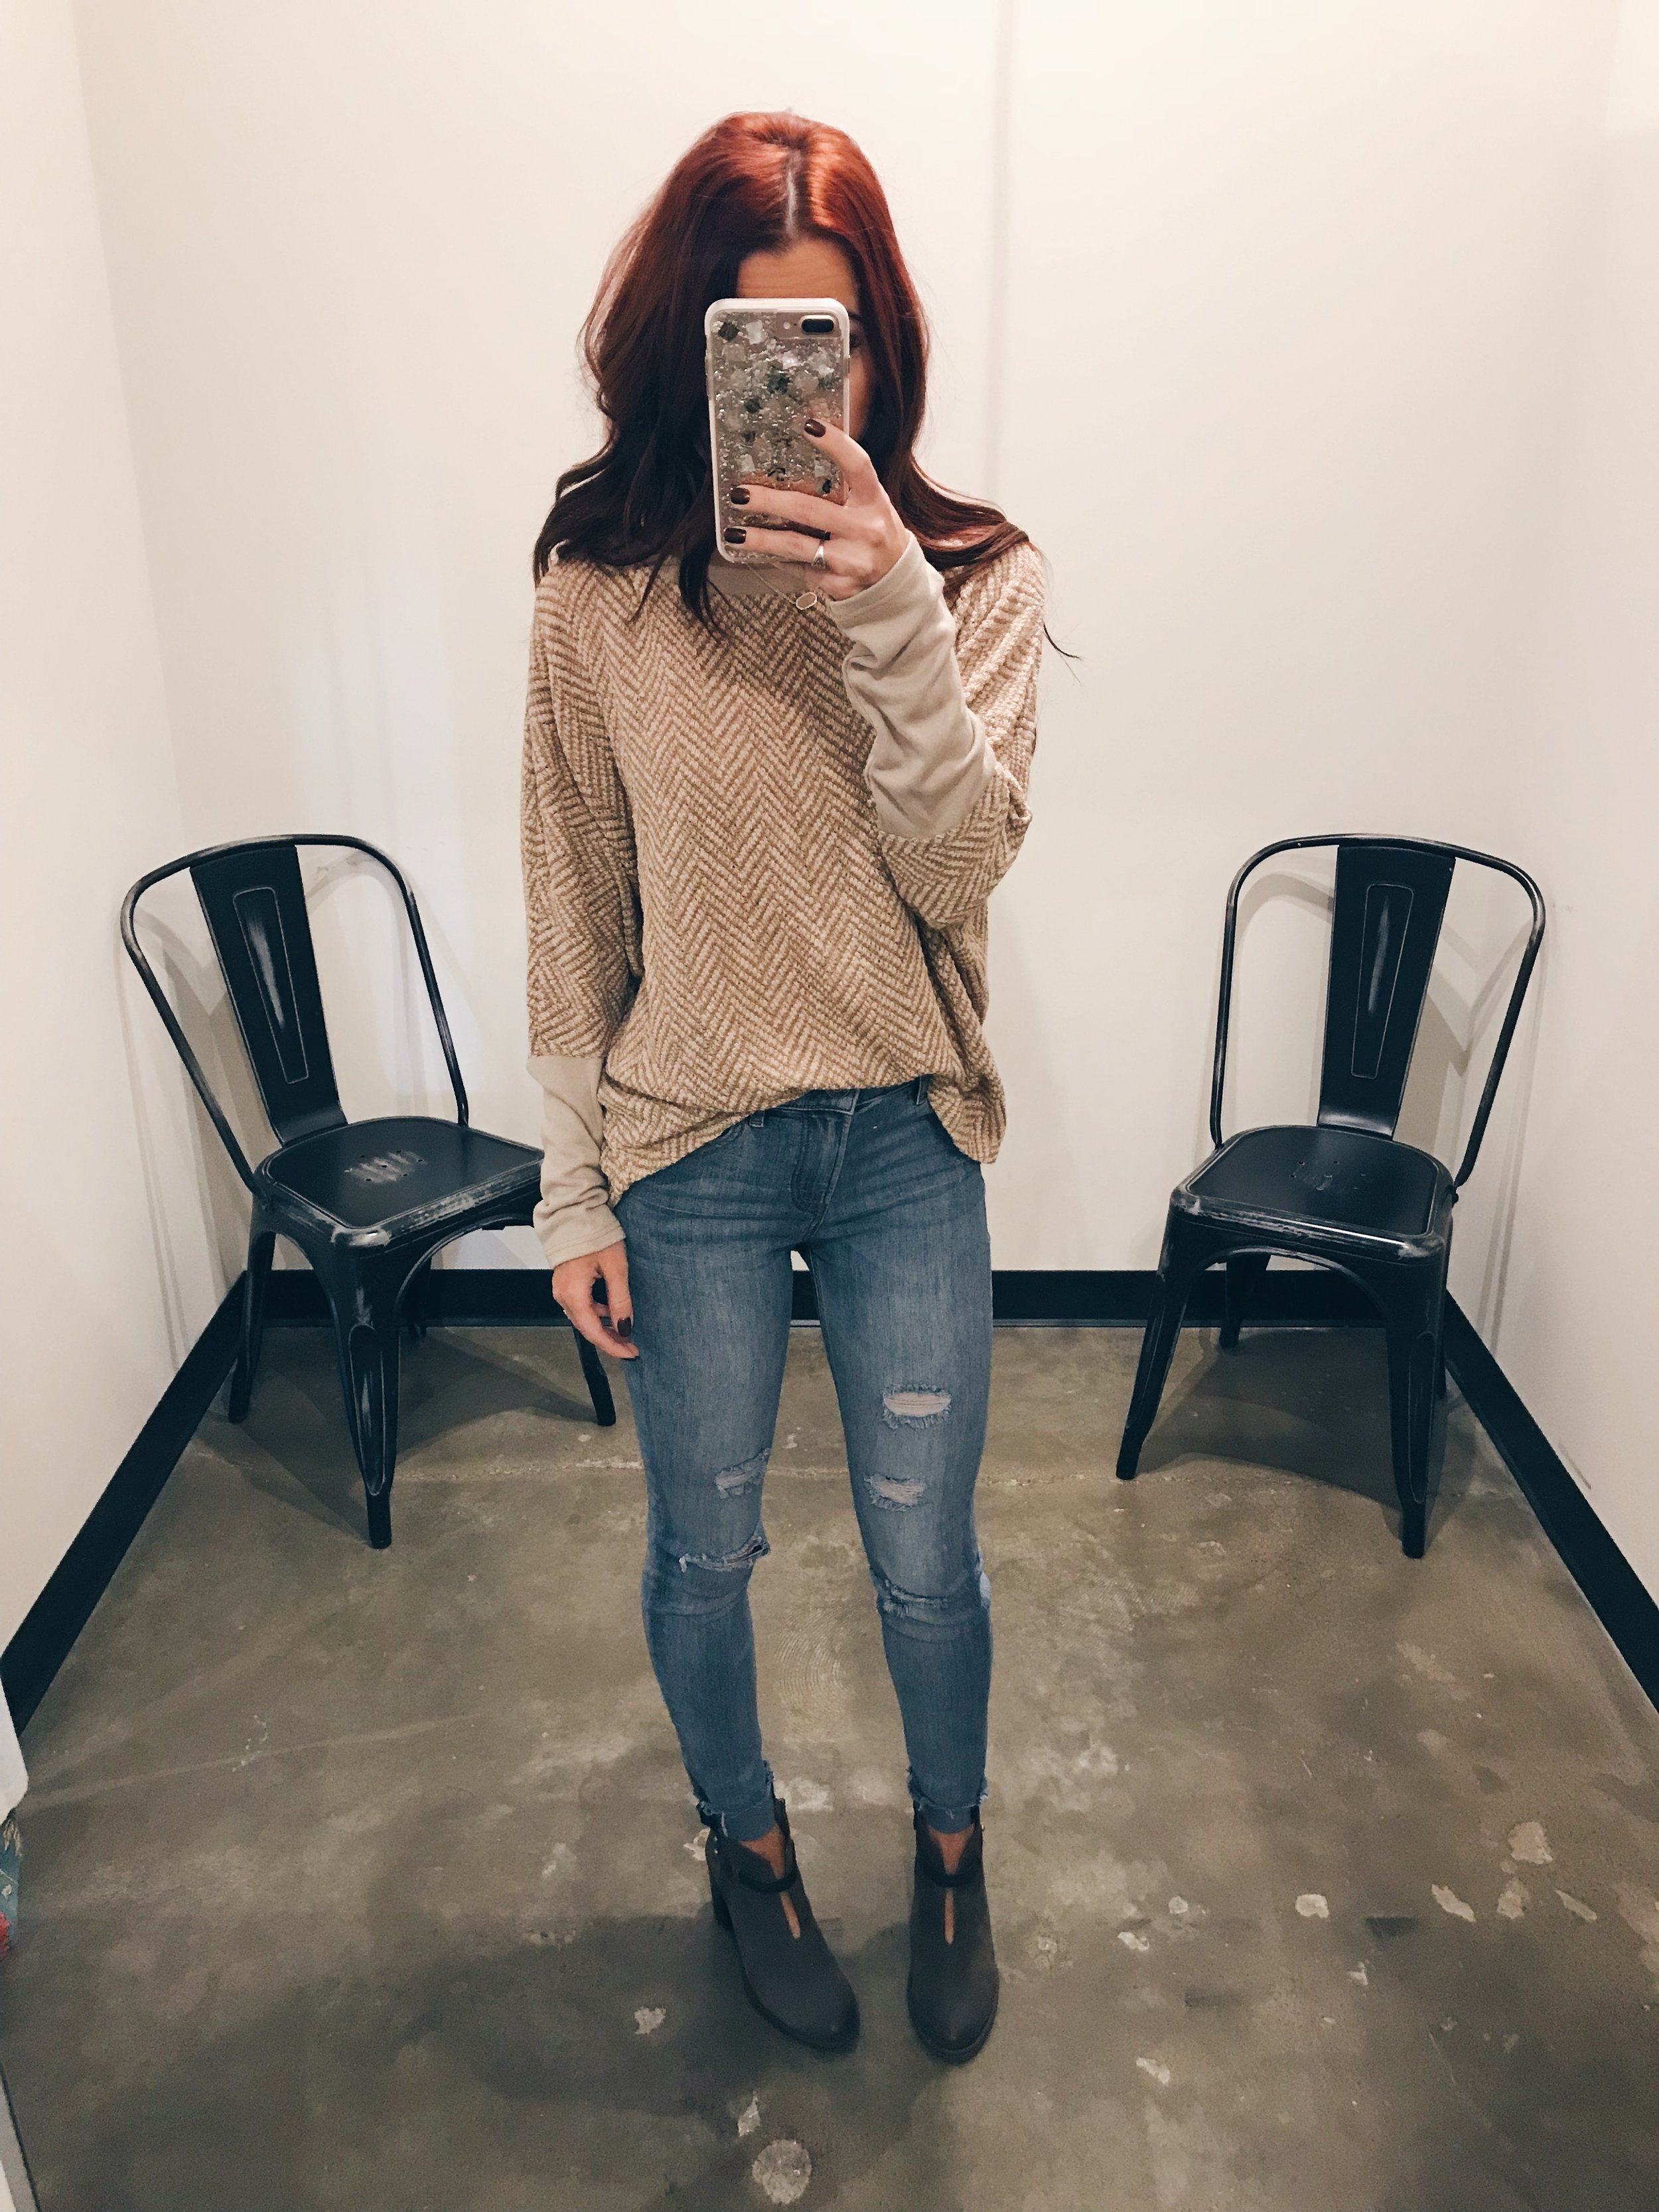 The Ultimate Black Friday Guide by Indianapolis fashion blogger Trendy in Indy